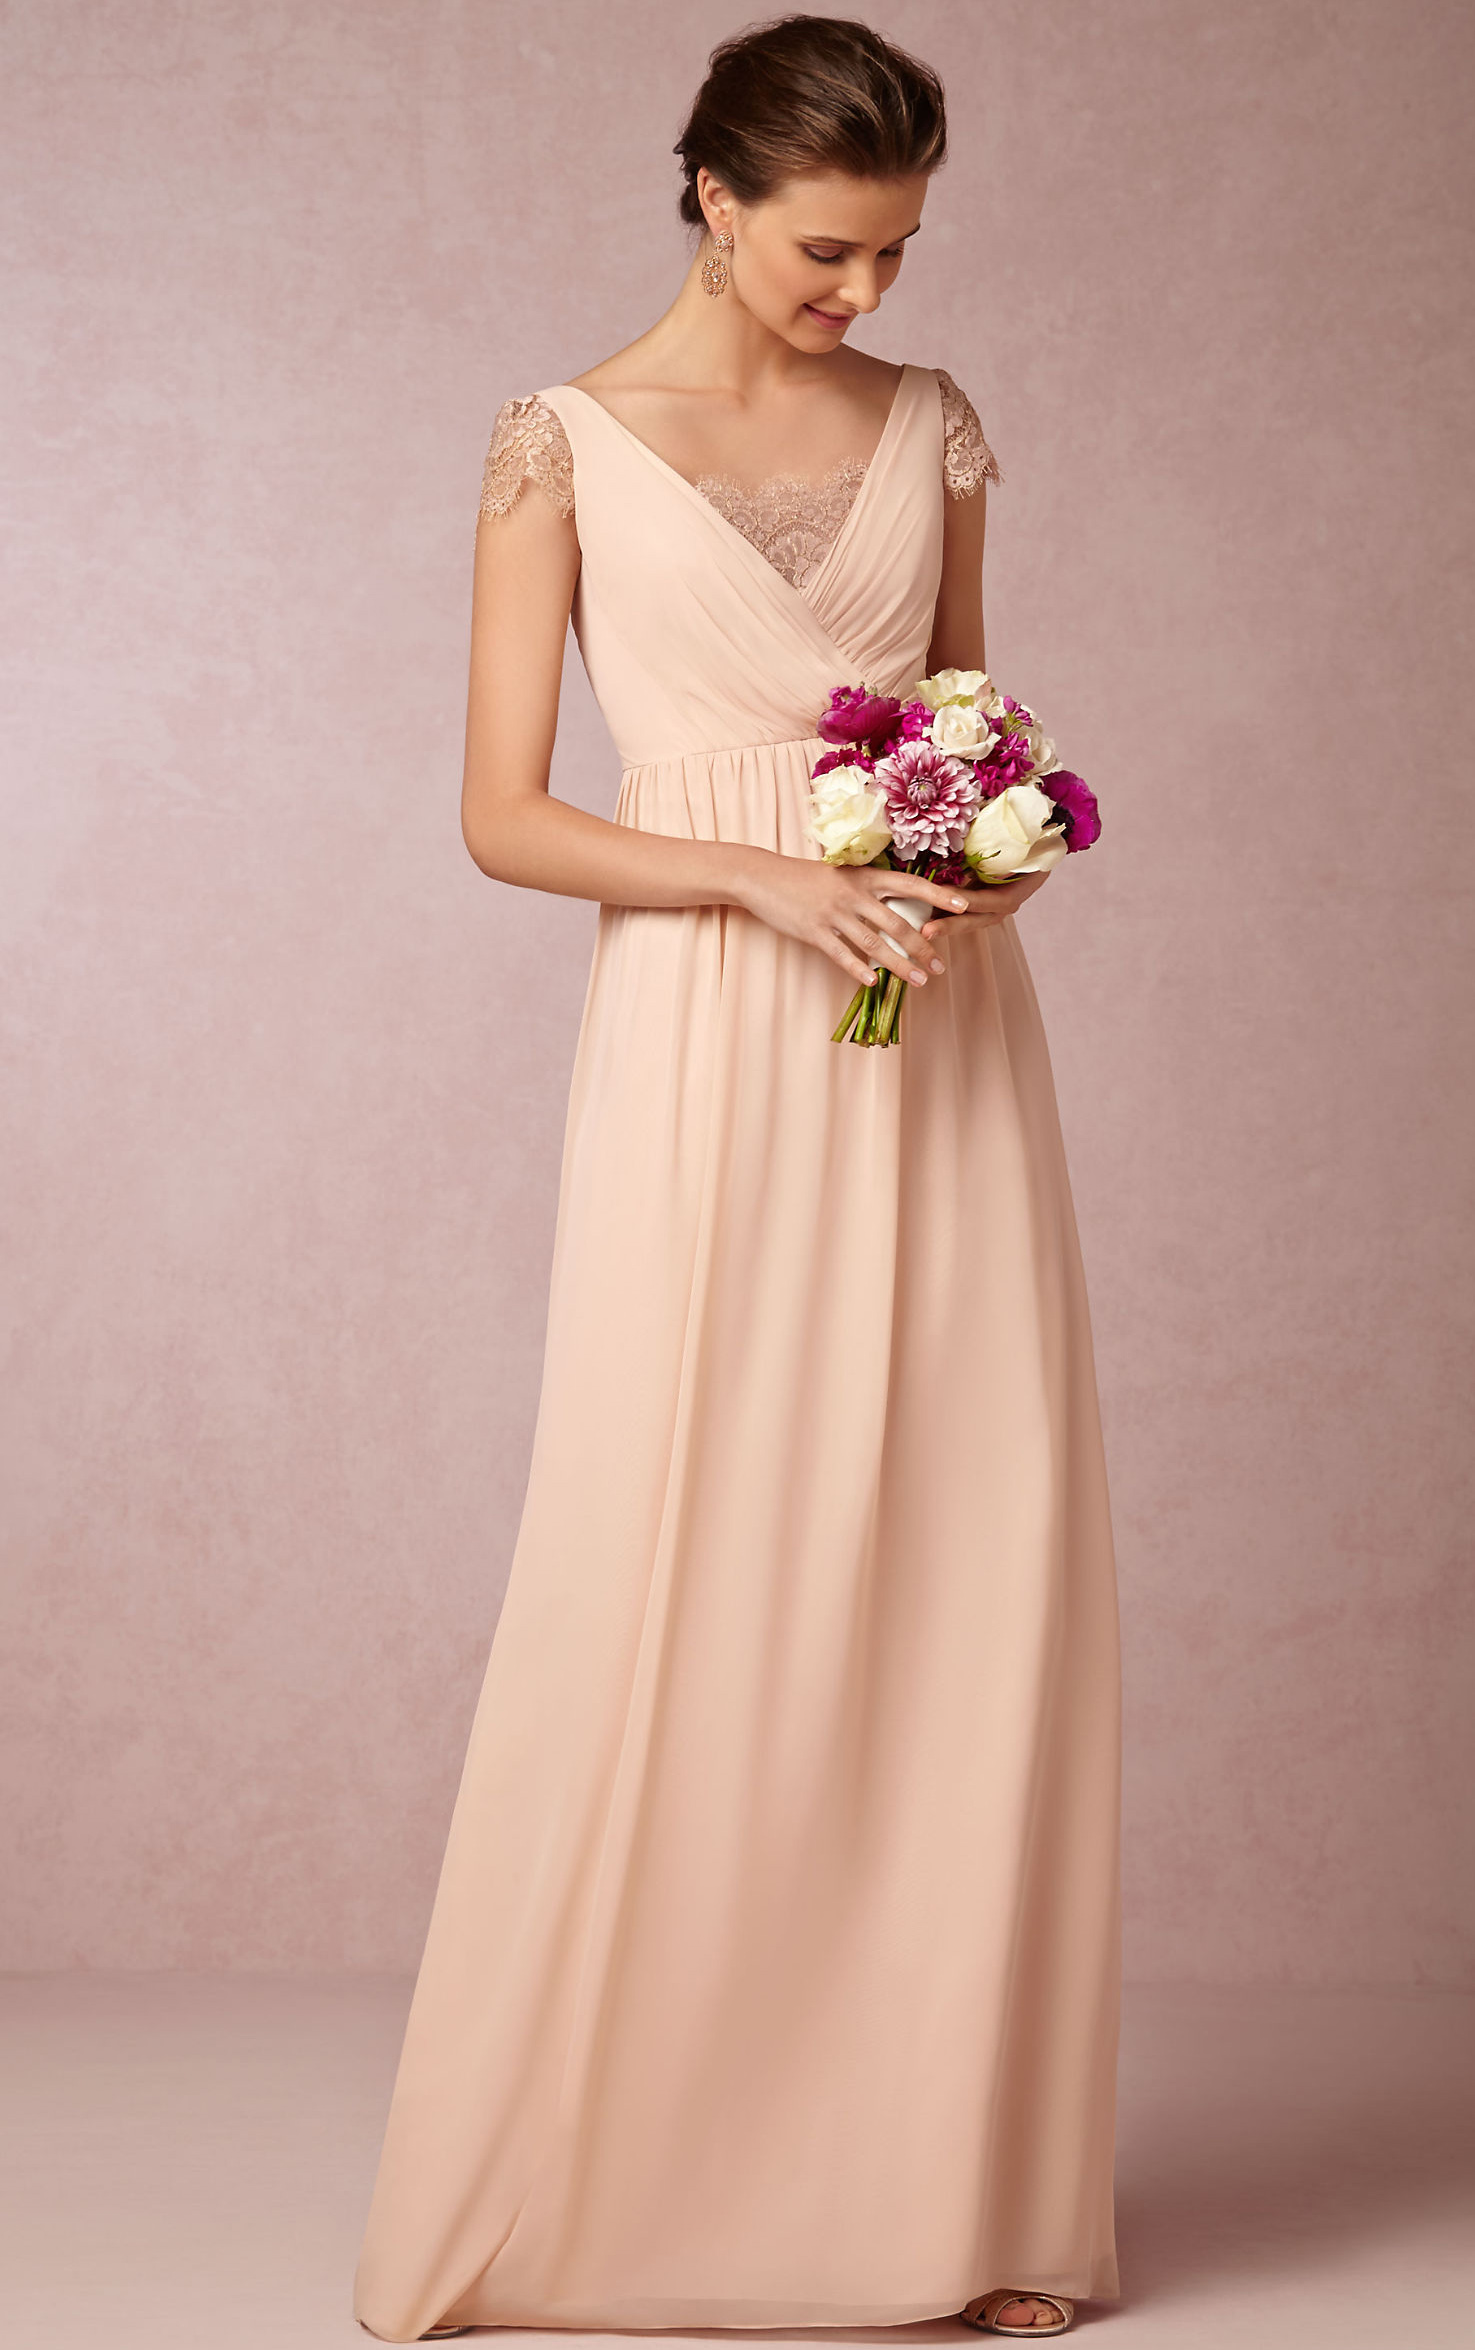 A line bridesmaid dresses high cut wedding dresses a line bridesmaid dresses 28 ombrellifo Choice Image